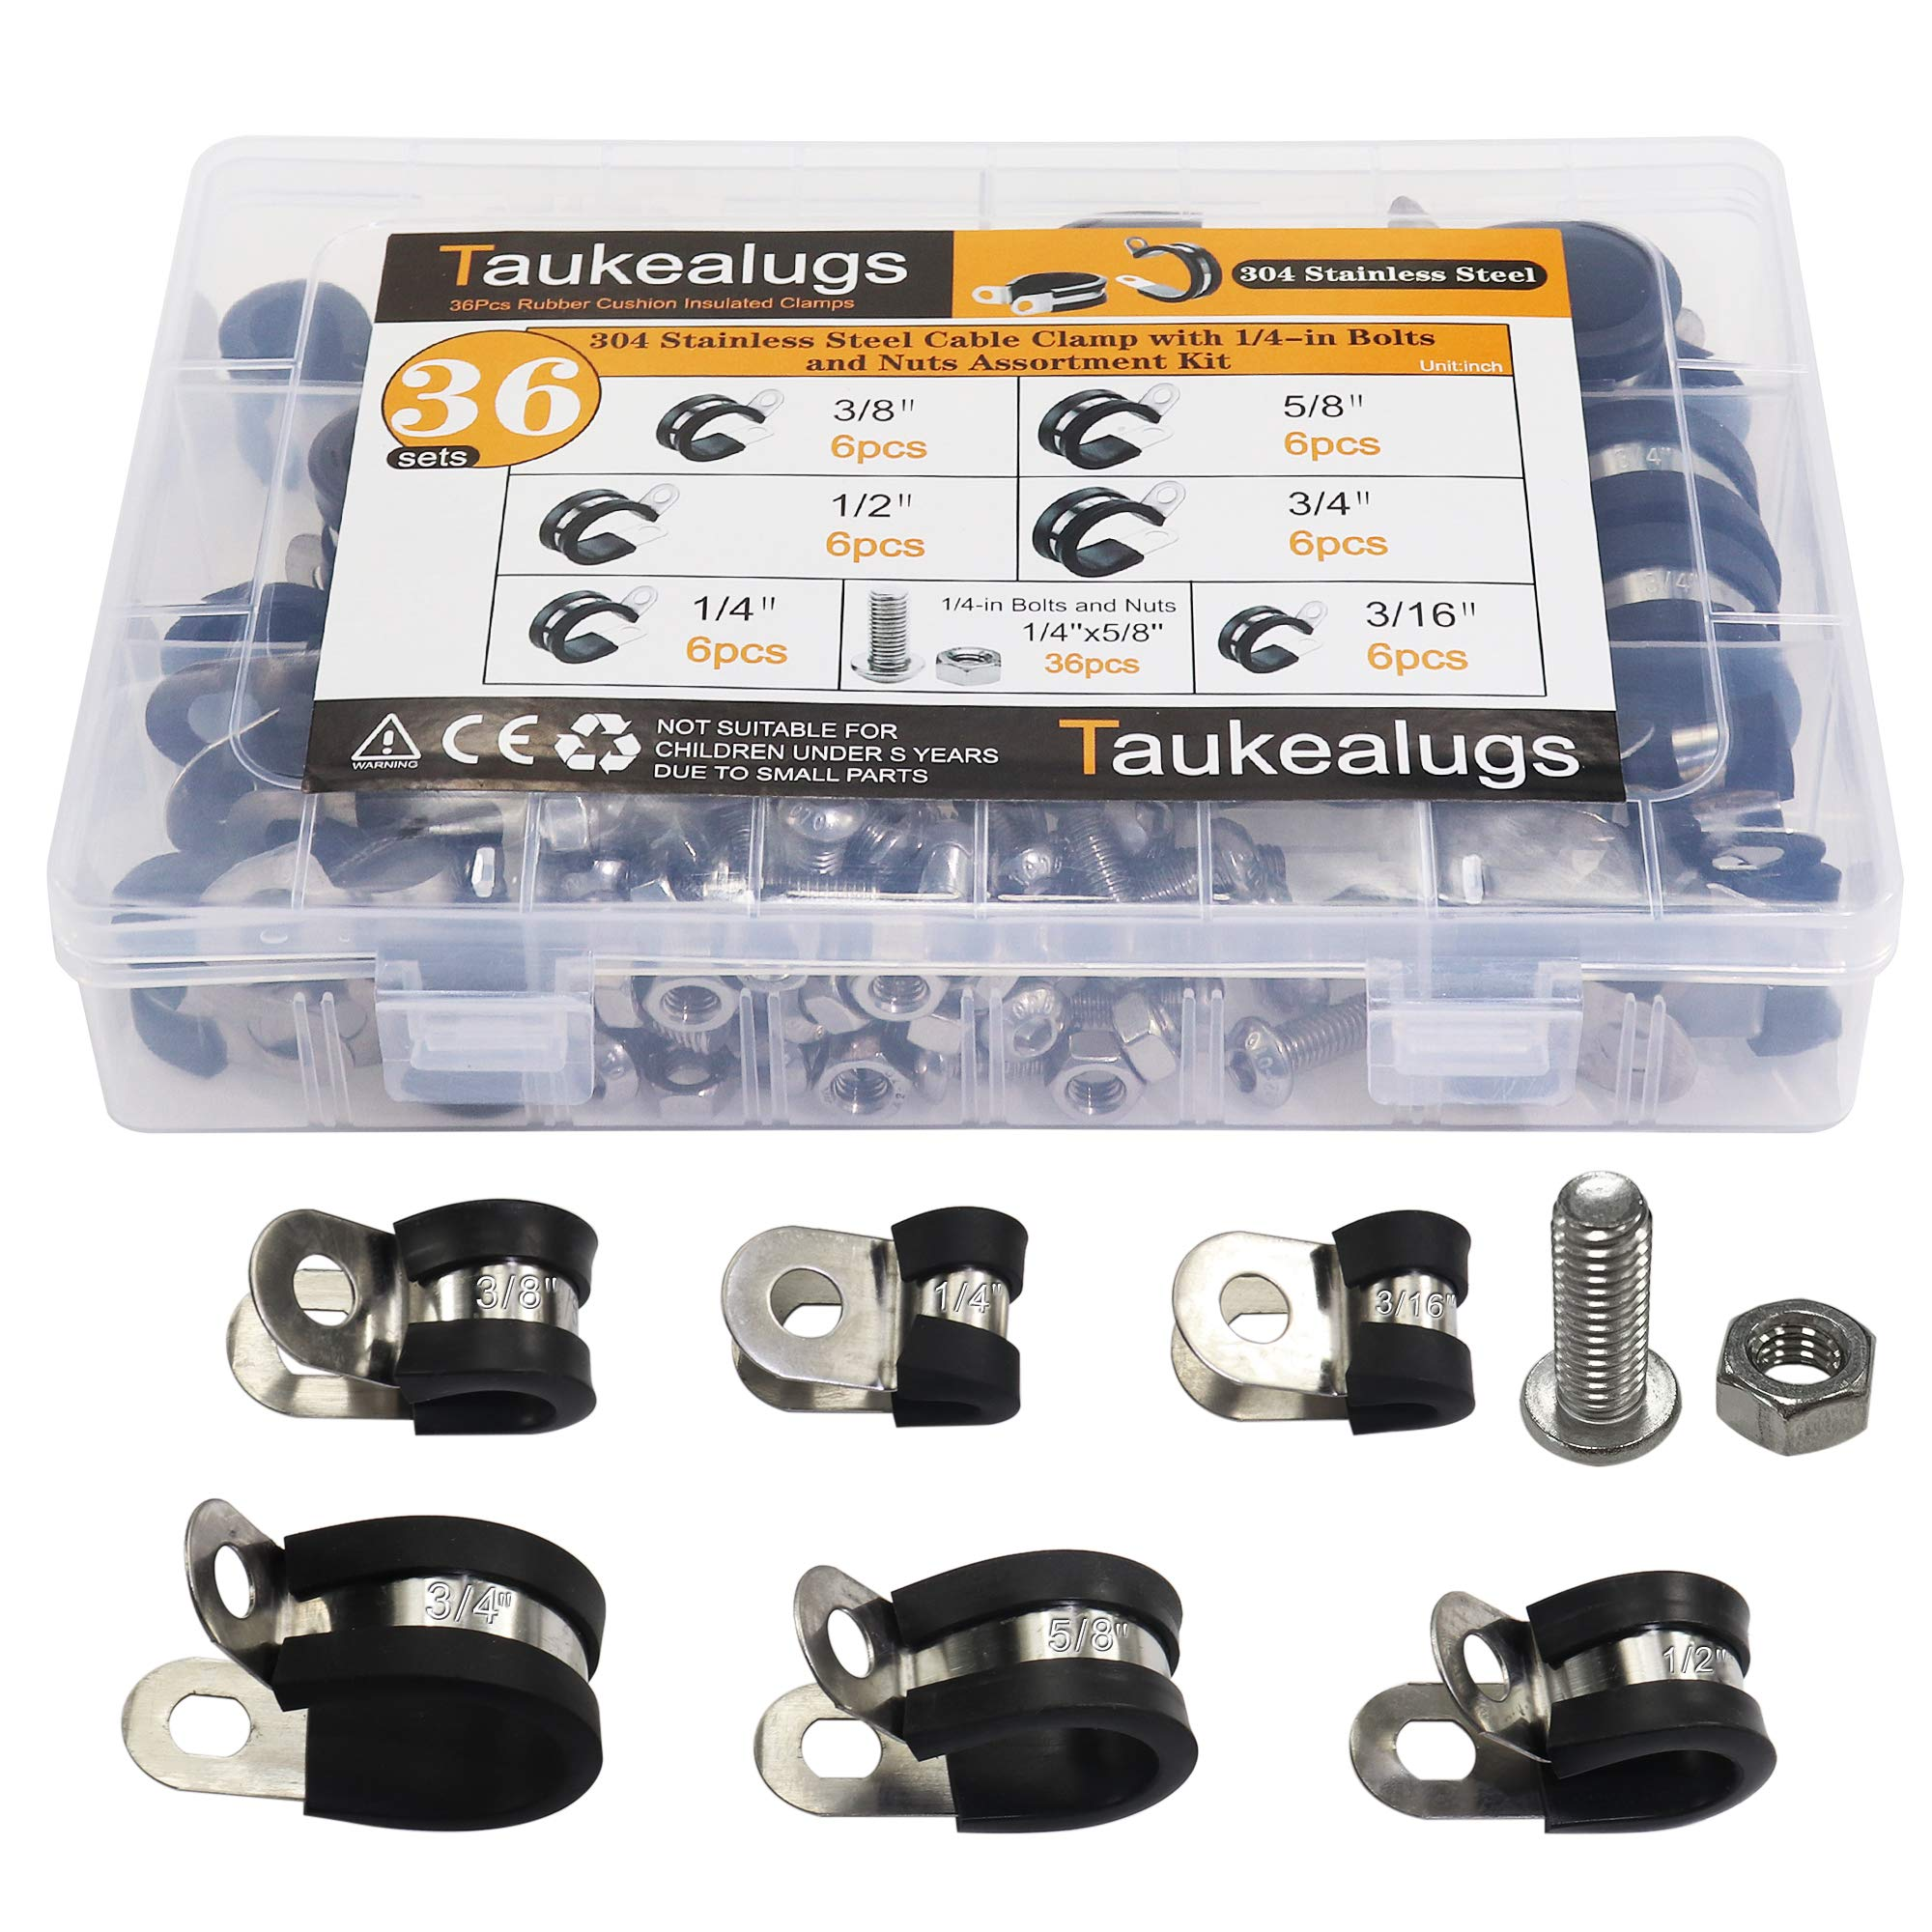 36sets Rubber Cushion Insulated hose Cable oil line Clamps-6sizes 304 Stainless Steel Metal Clamp with Hex Bolts Screws Nuts Assortment Kit by Taukealugs